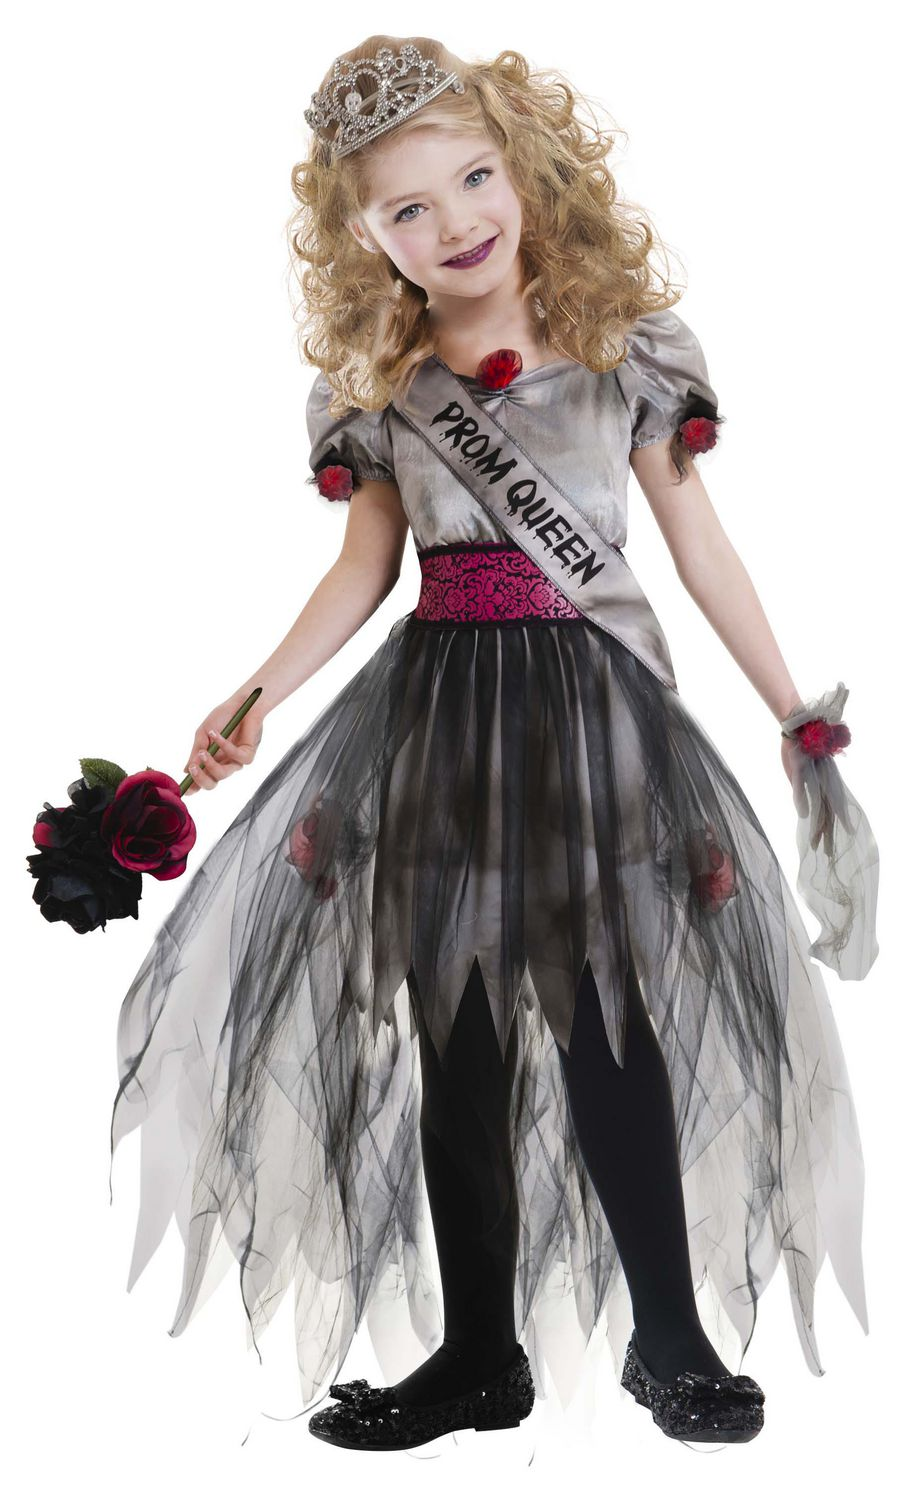 Halloween Zombie Costumes For Girls.Halloween Girls Prom Zombie Costumes Walmart Canada